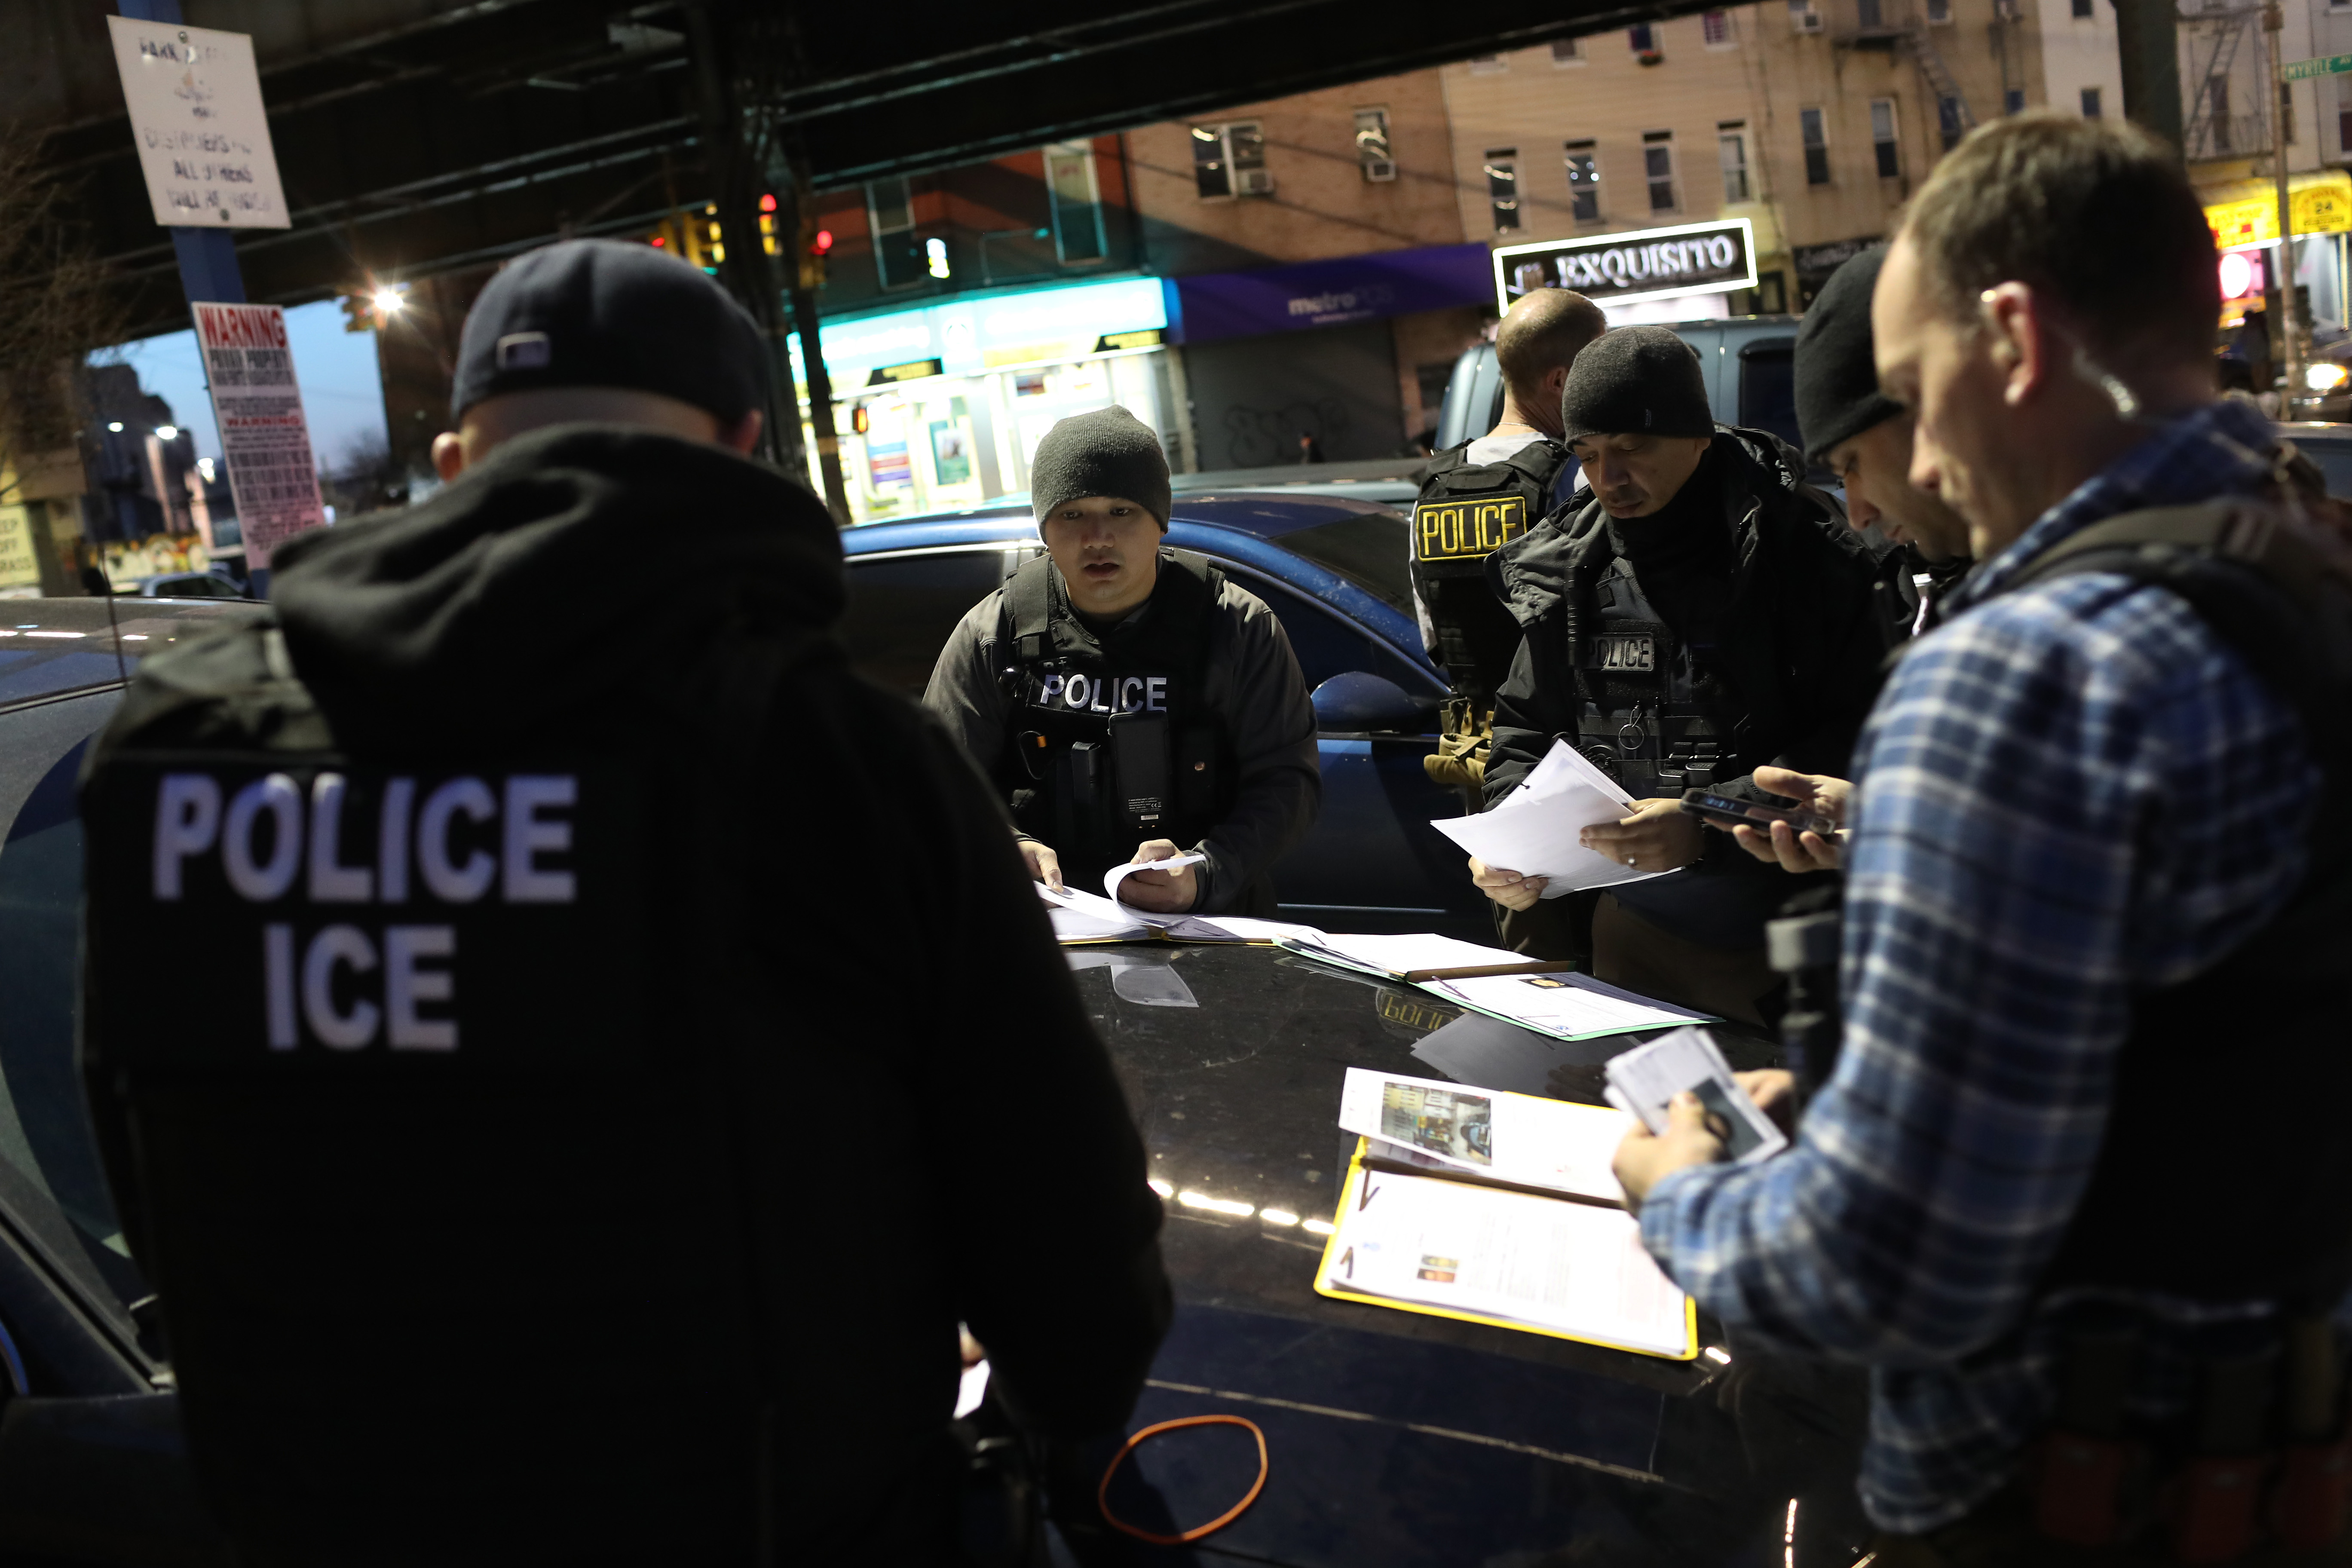 U.S. Immigration and Customs Enforcement (ICE), officers prepare for morning operations to arrest undocumented immigrants on April 11, 2018 in New York City. (Getty Images)